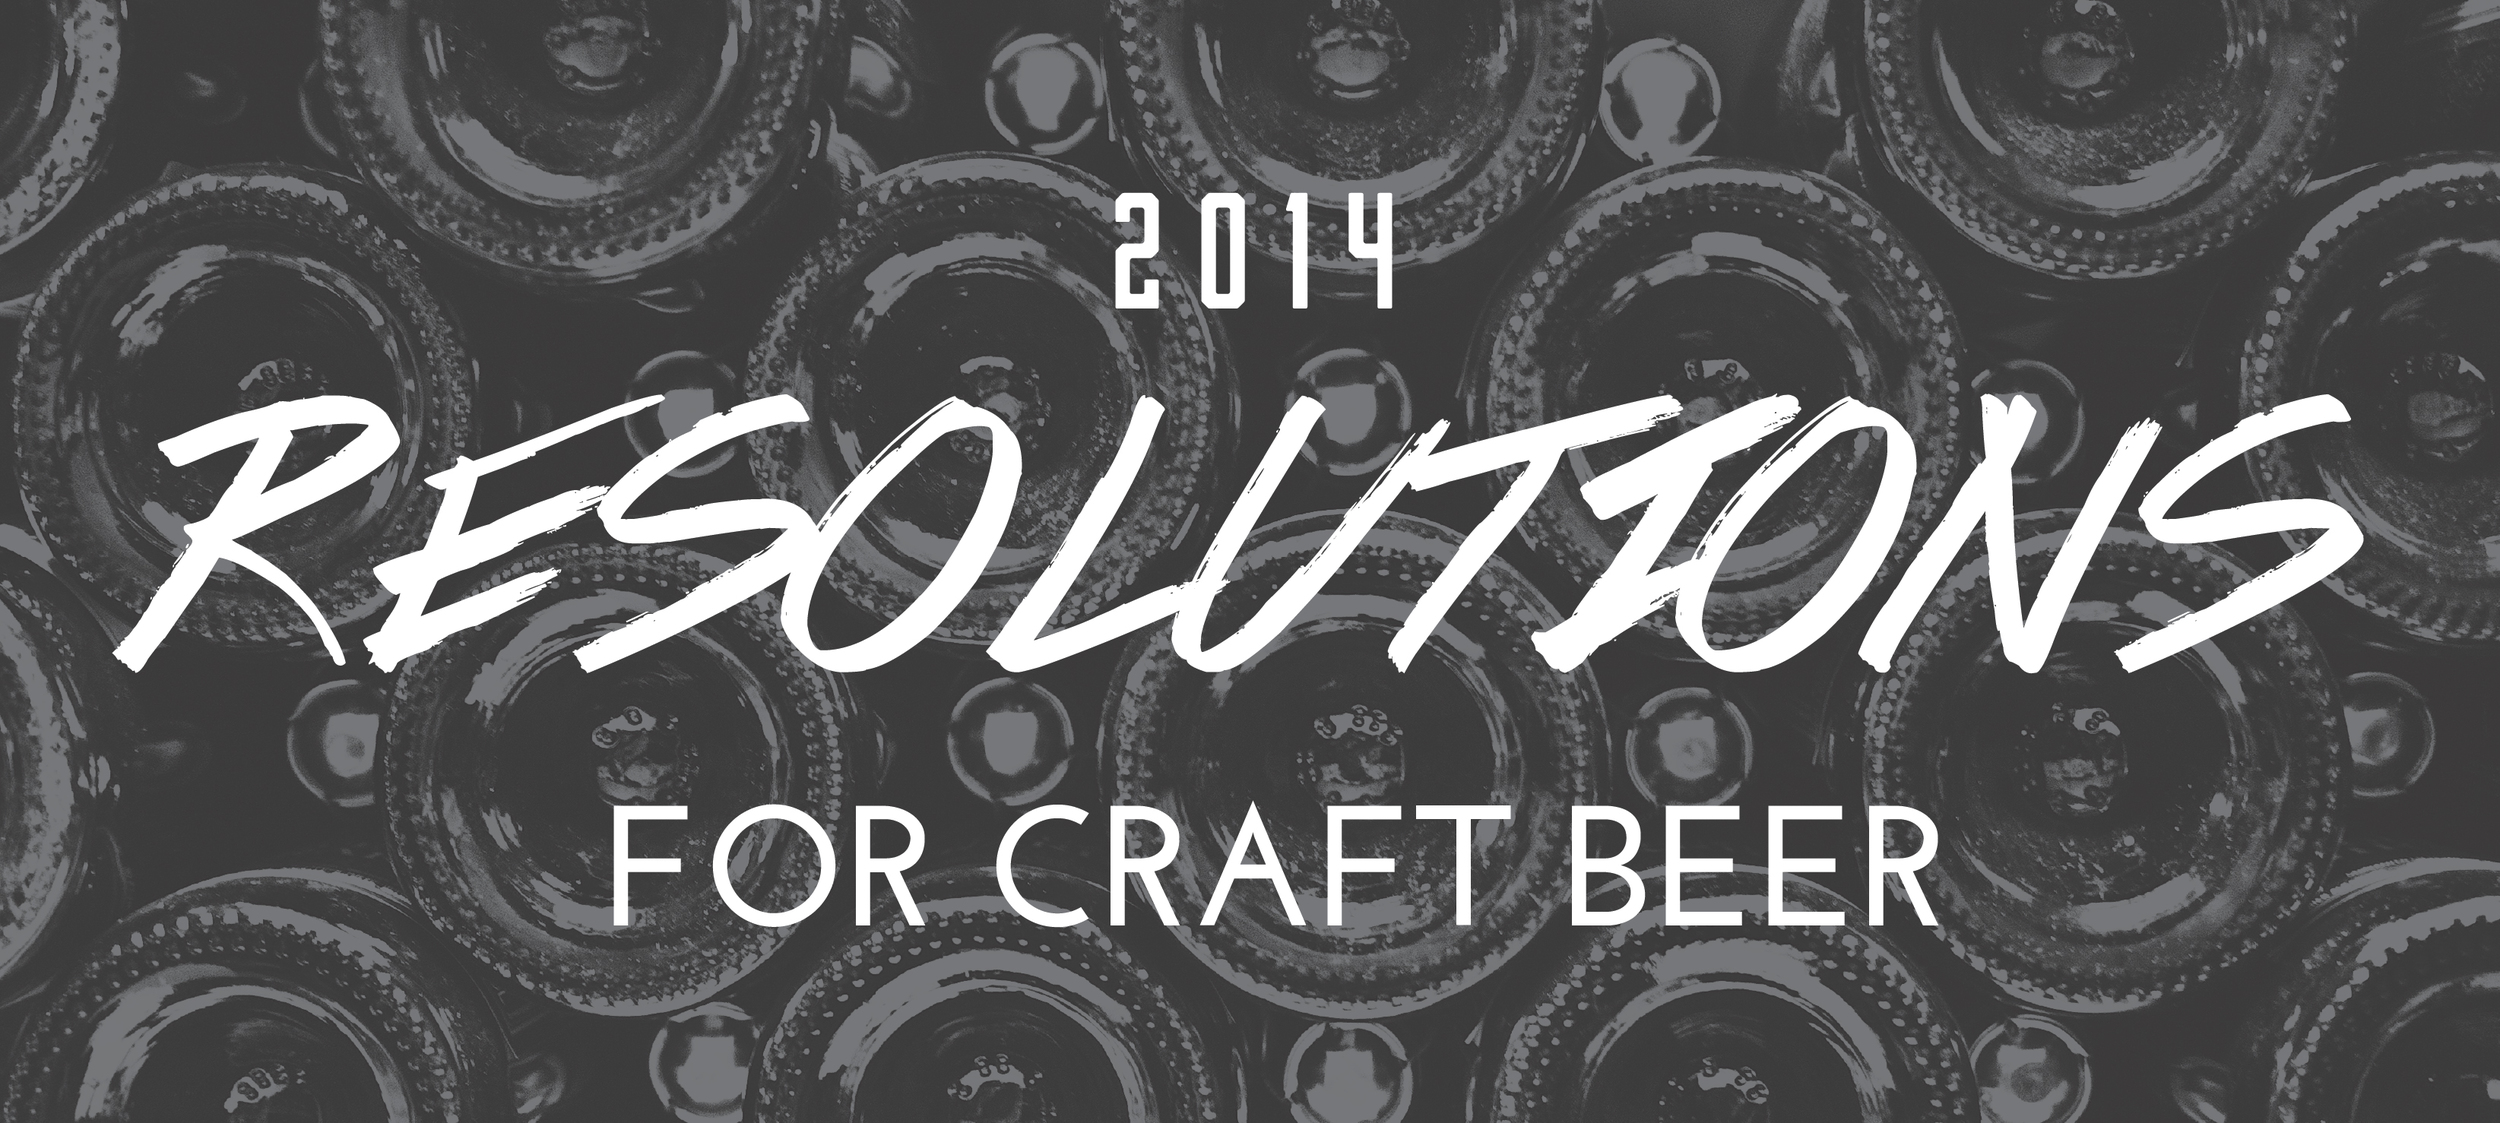 CRAFT BEER RESOLUTIONS HEADER copy.jpg